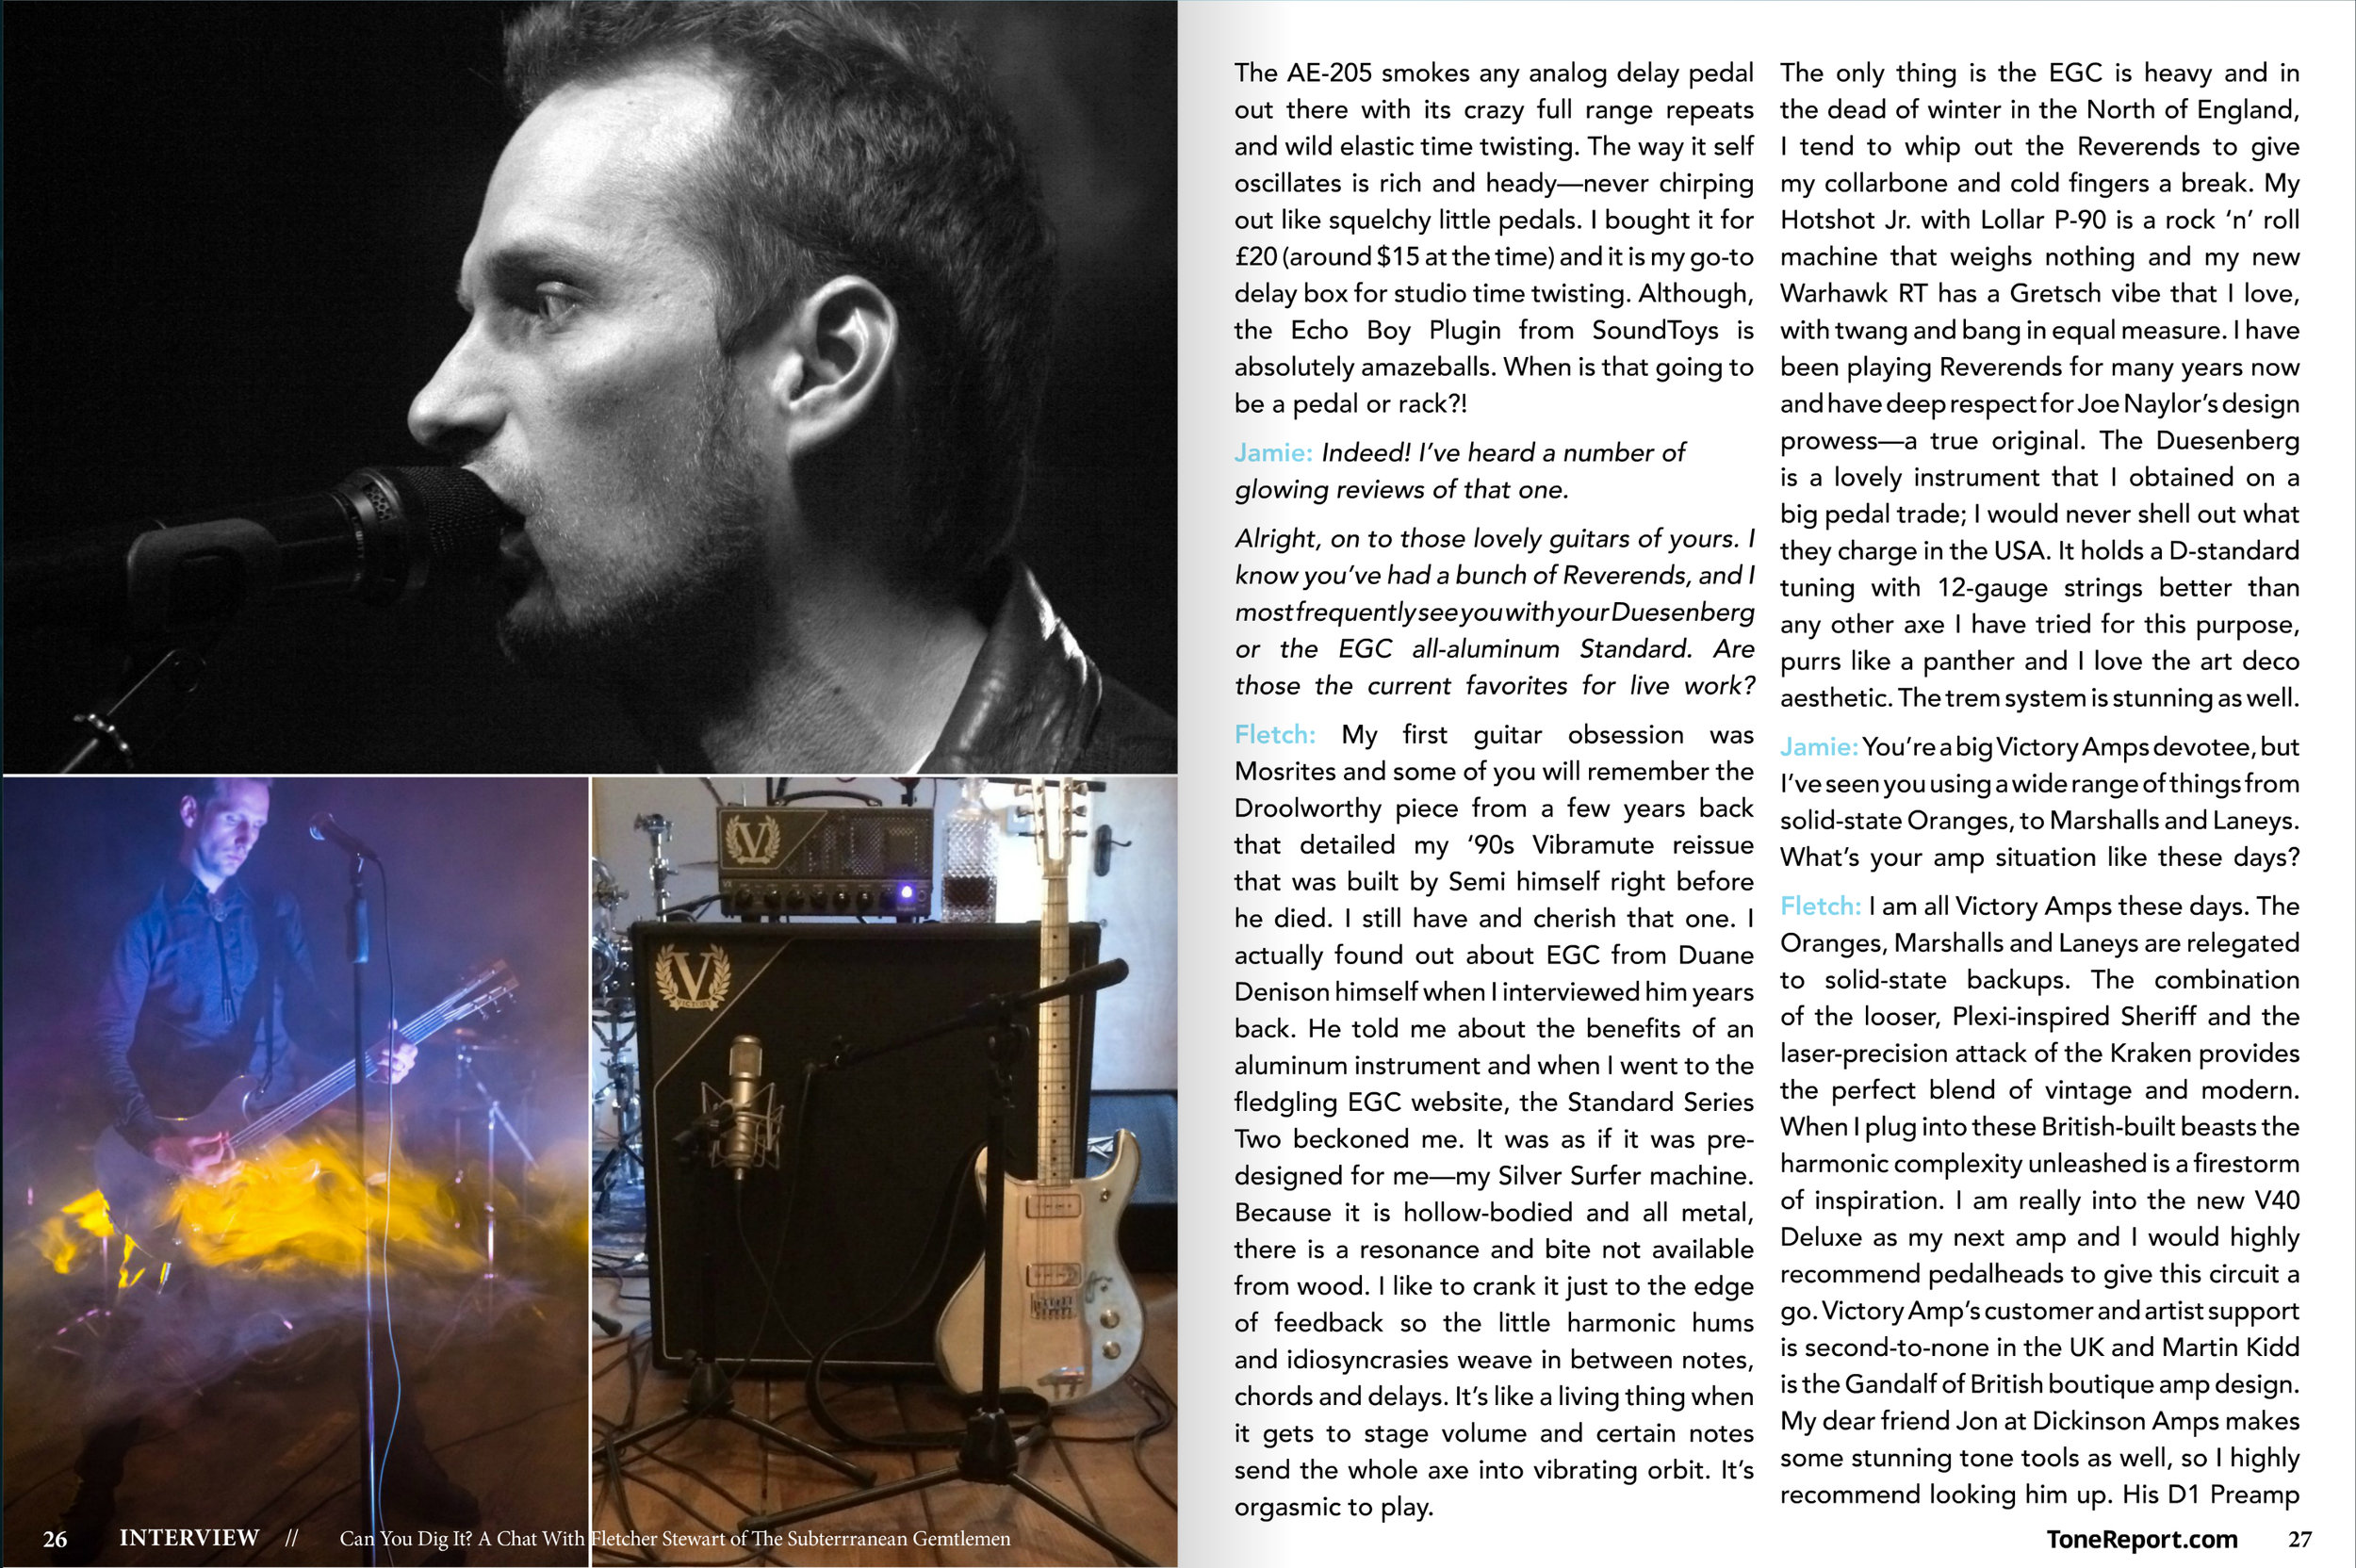 Read this interview with Fletcher Stewart in the world's Premier Gear Publication,   Tone Report Weekly   and get the full disclosure on how it all came to be, the aural arsenal and more...